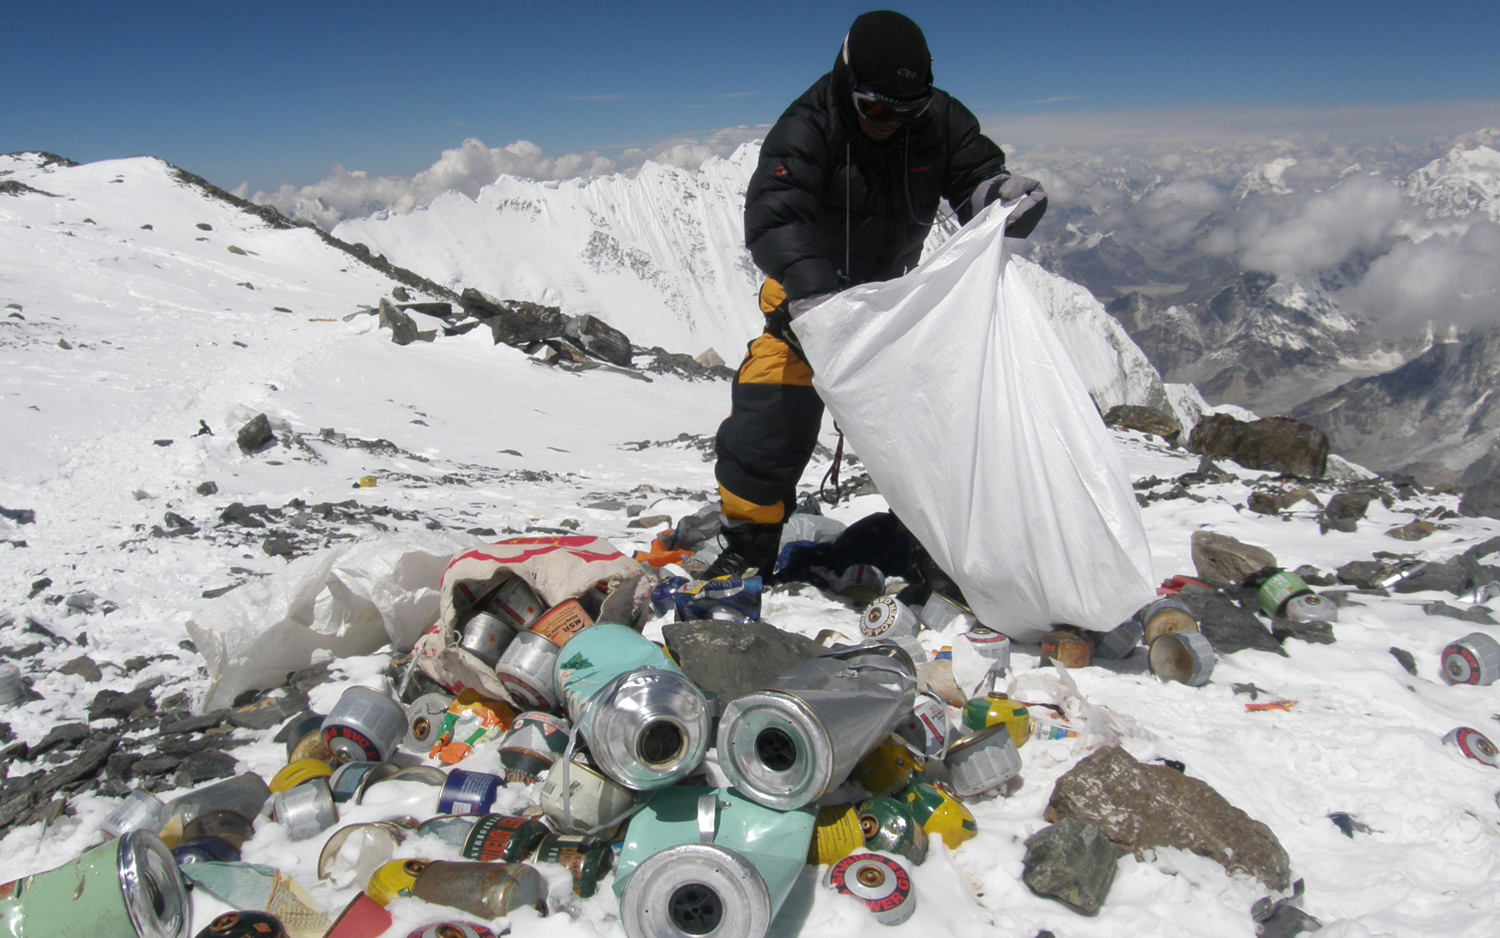 Littering haunts even the Everest: Nepal decides to make art with trash left on mount